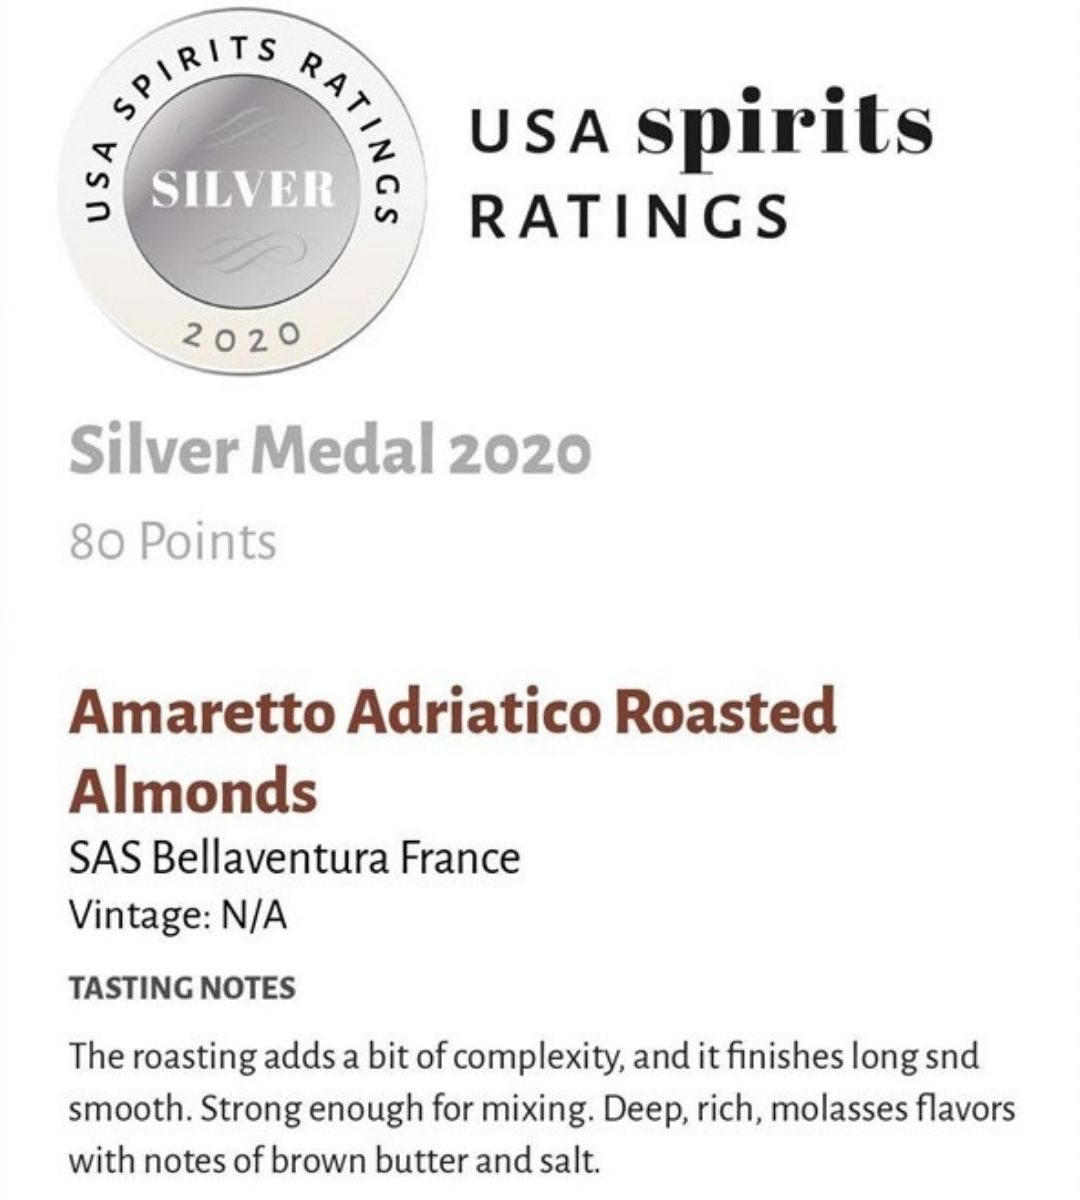 Amaretto Adriatico Roasted Almonds Silver Medal USA Spirits Ratings